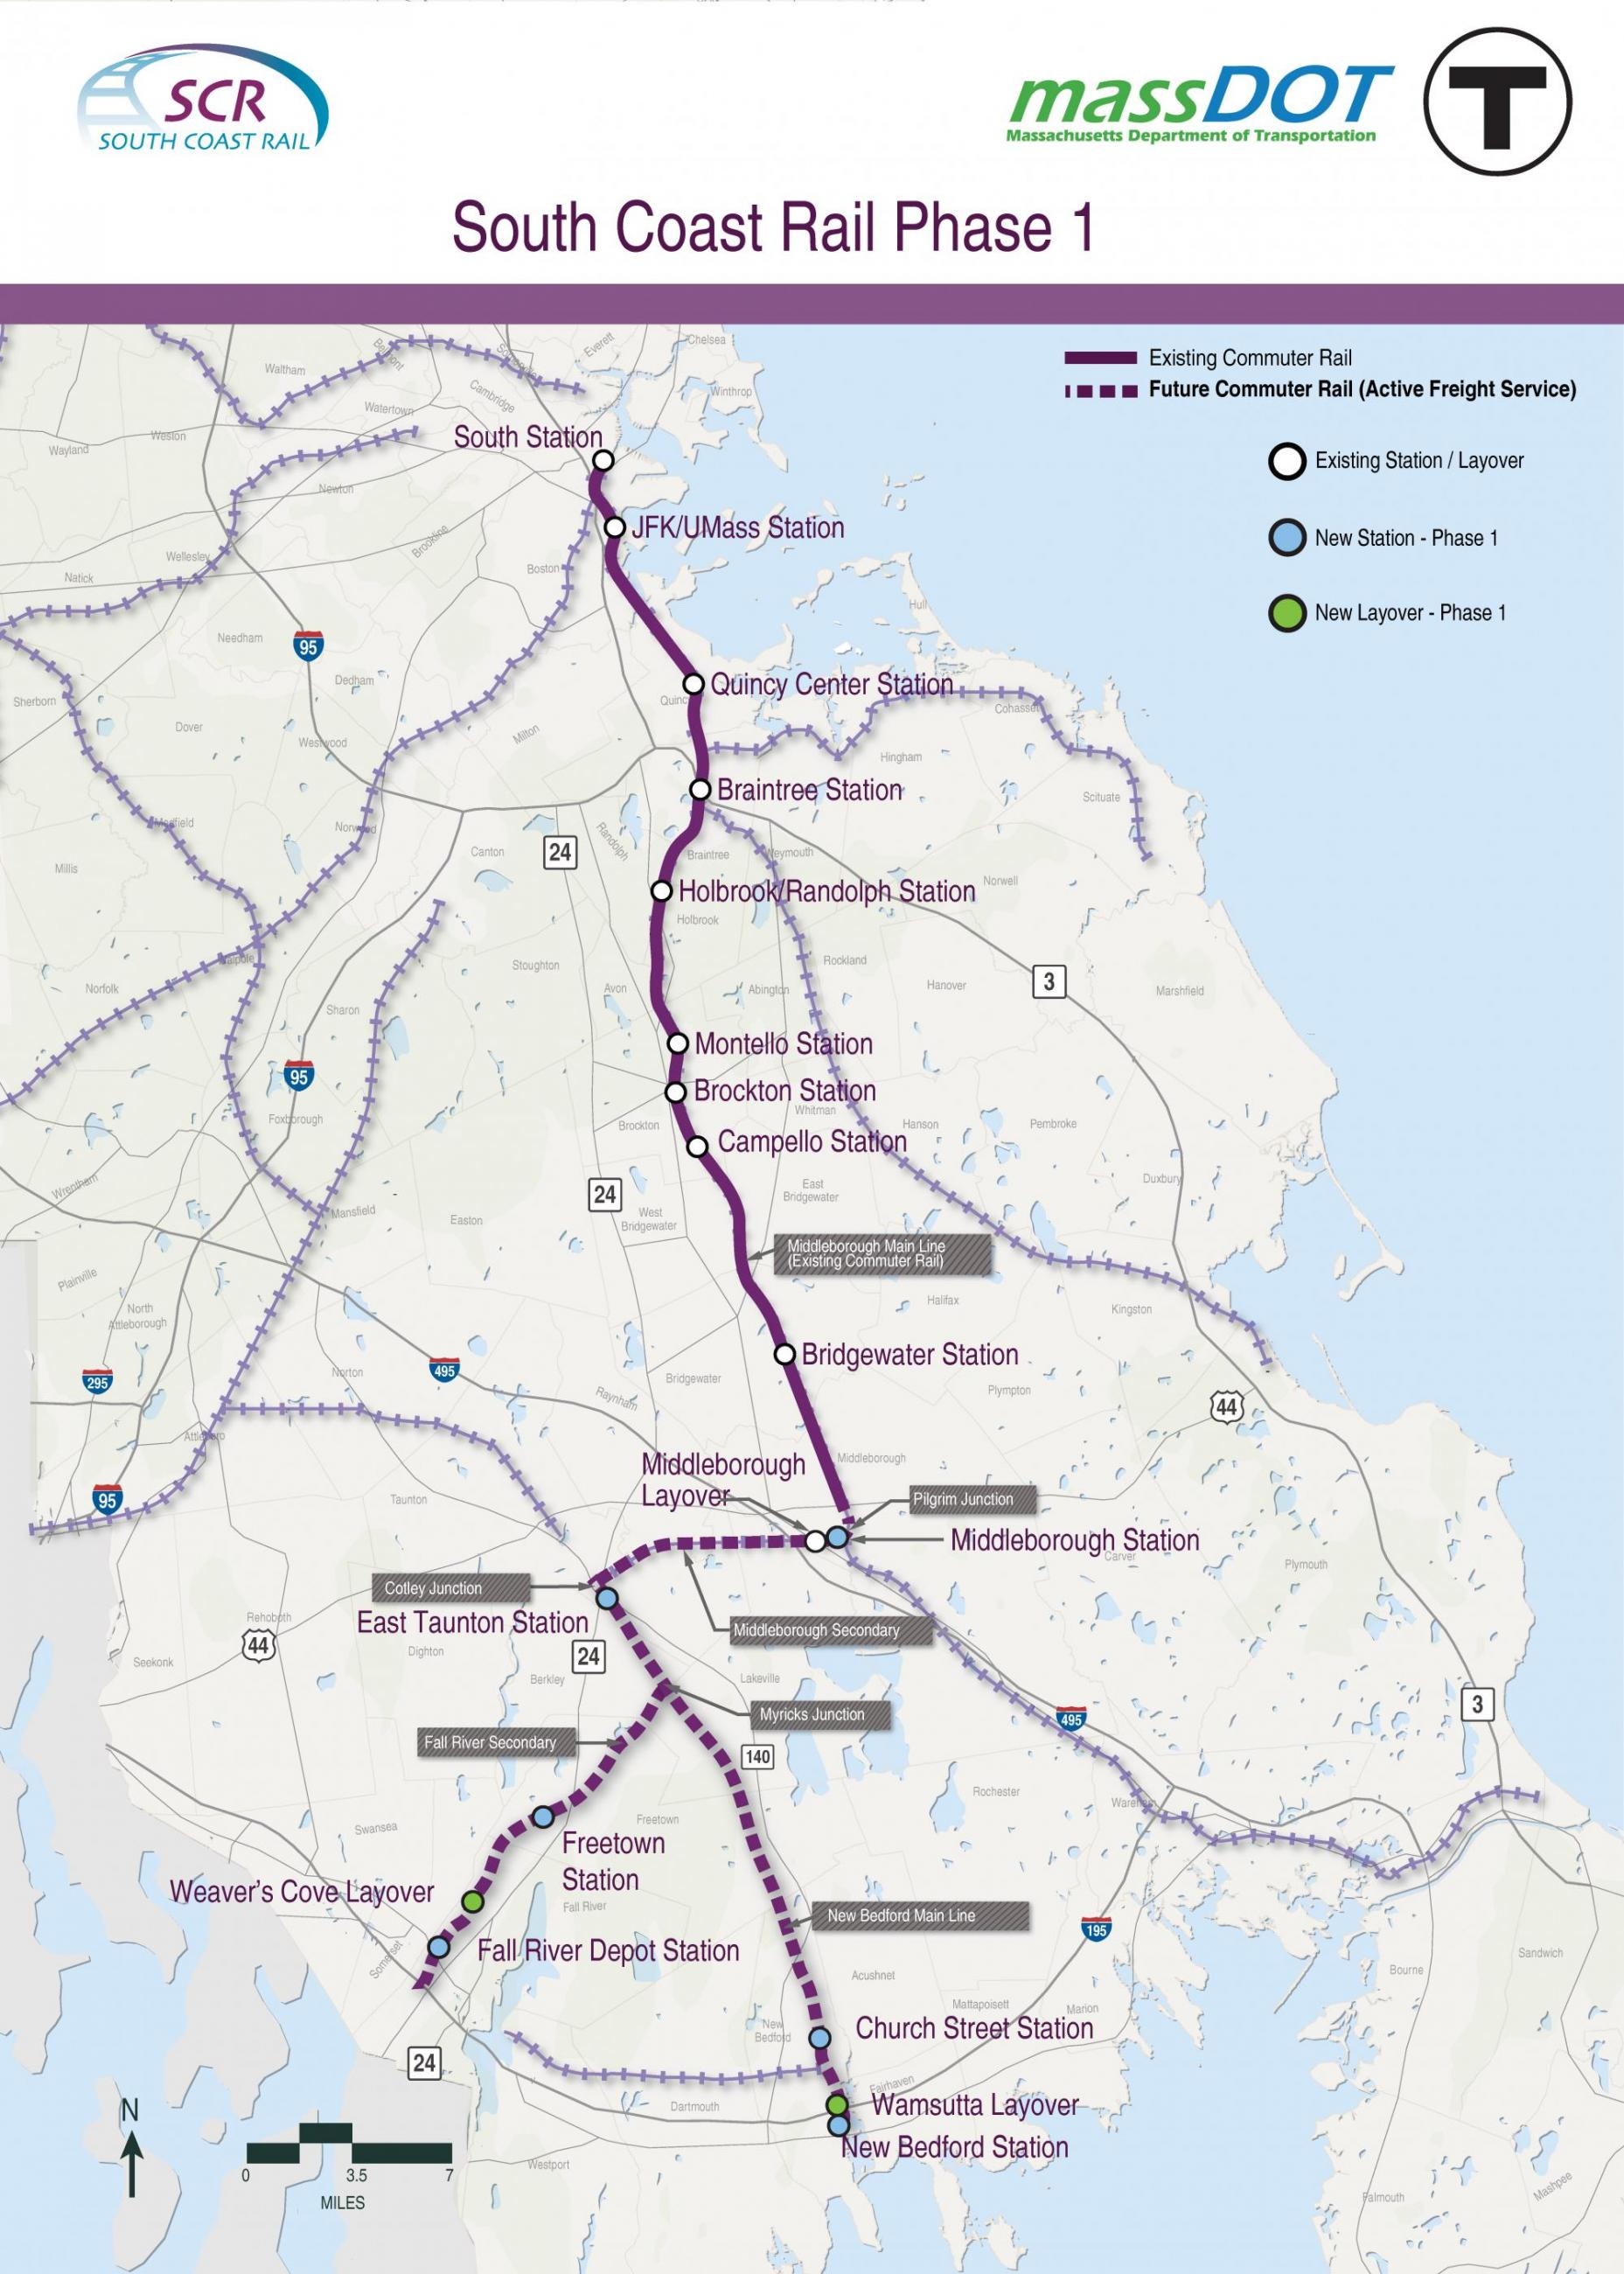 A map of the South Coast Rail Phase 1 corridor showing the Fall River Secondary, New Bedford, and Middleborough Secondary lines and stations